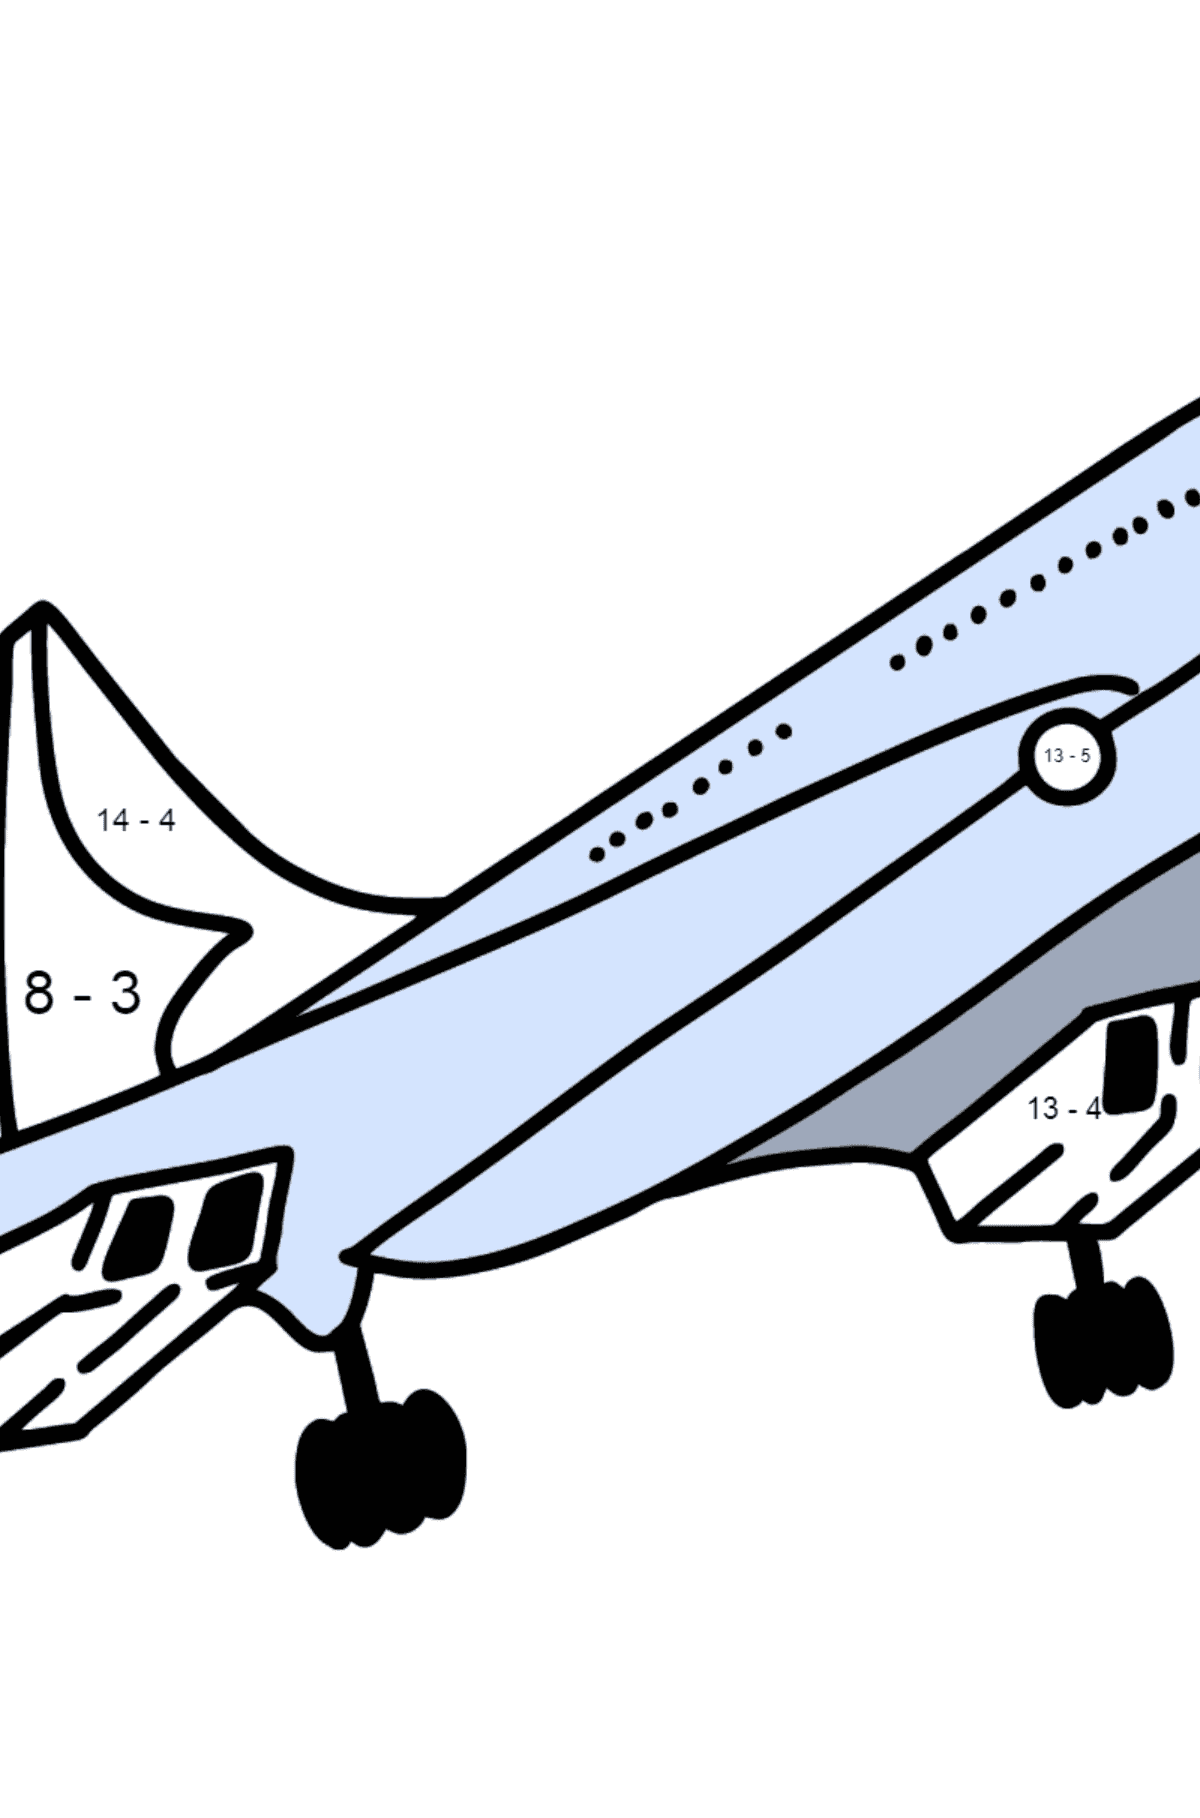 Concorde coloring page - Math Coloring - Subtraction for Kids